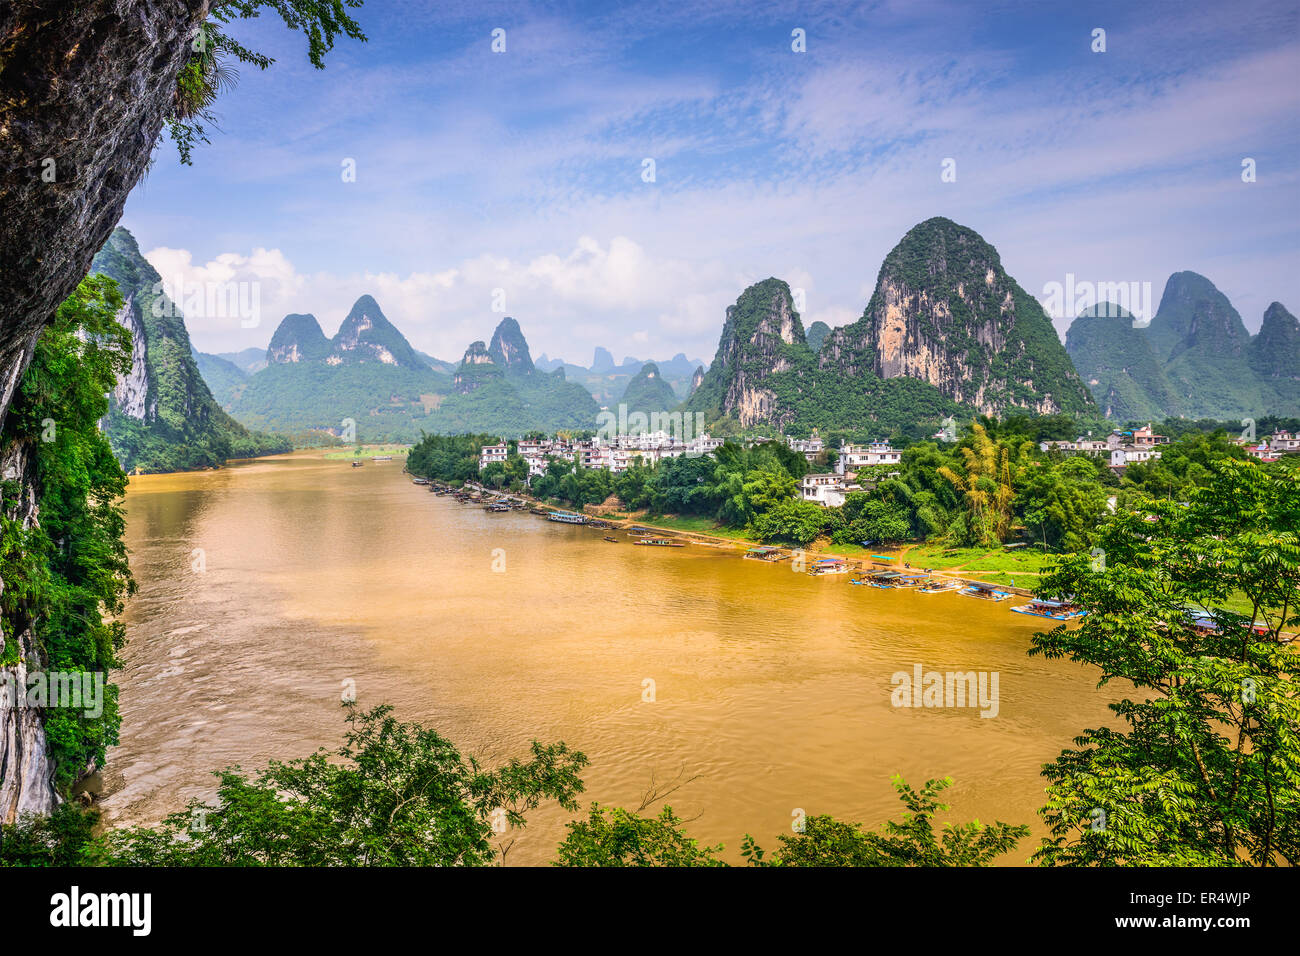 Guilin, China on the Li River. Stock Photo